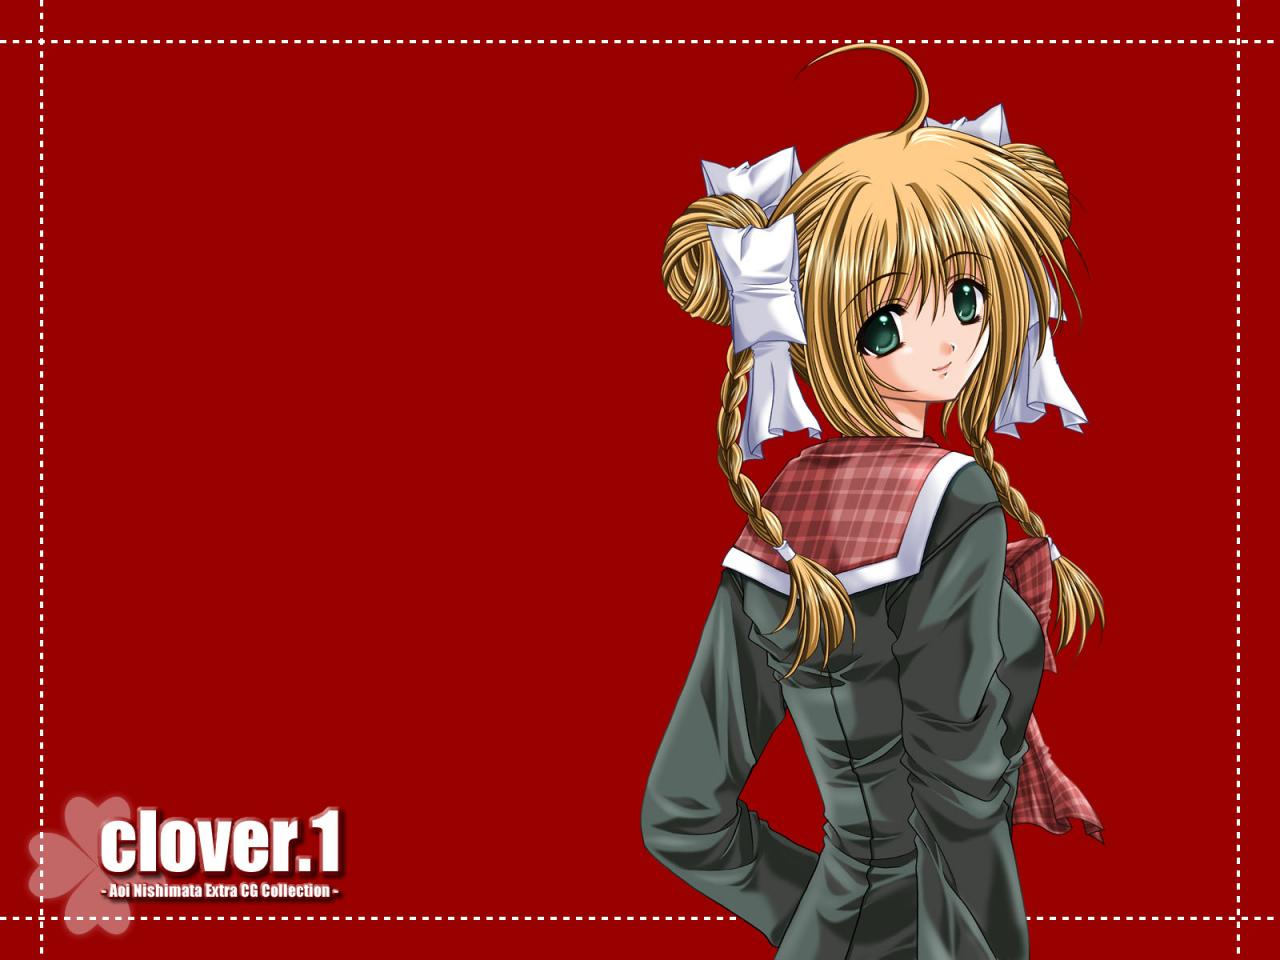 Wallpaper Clover belle fille